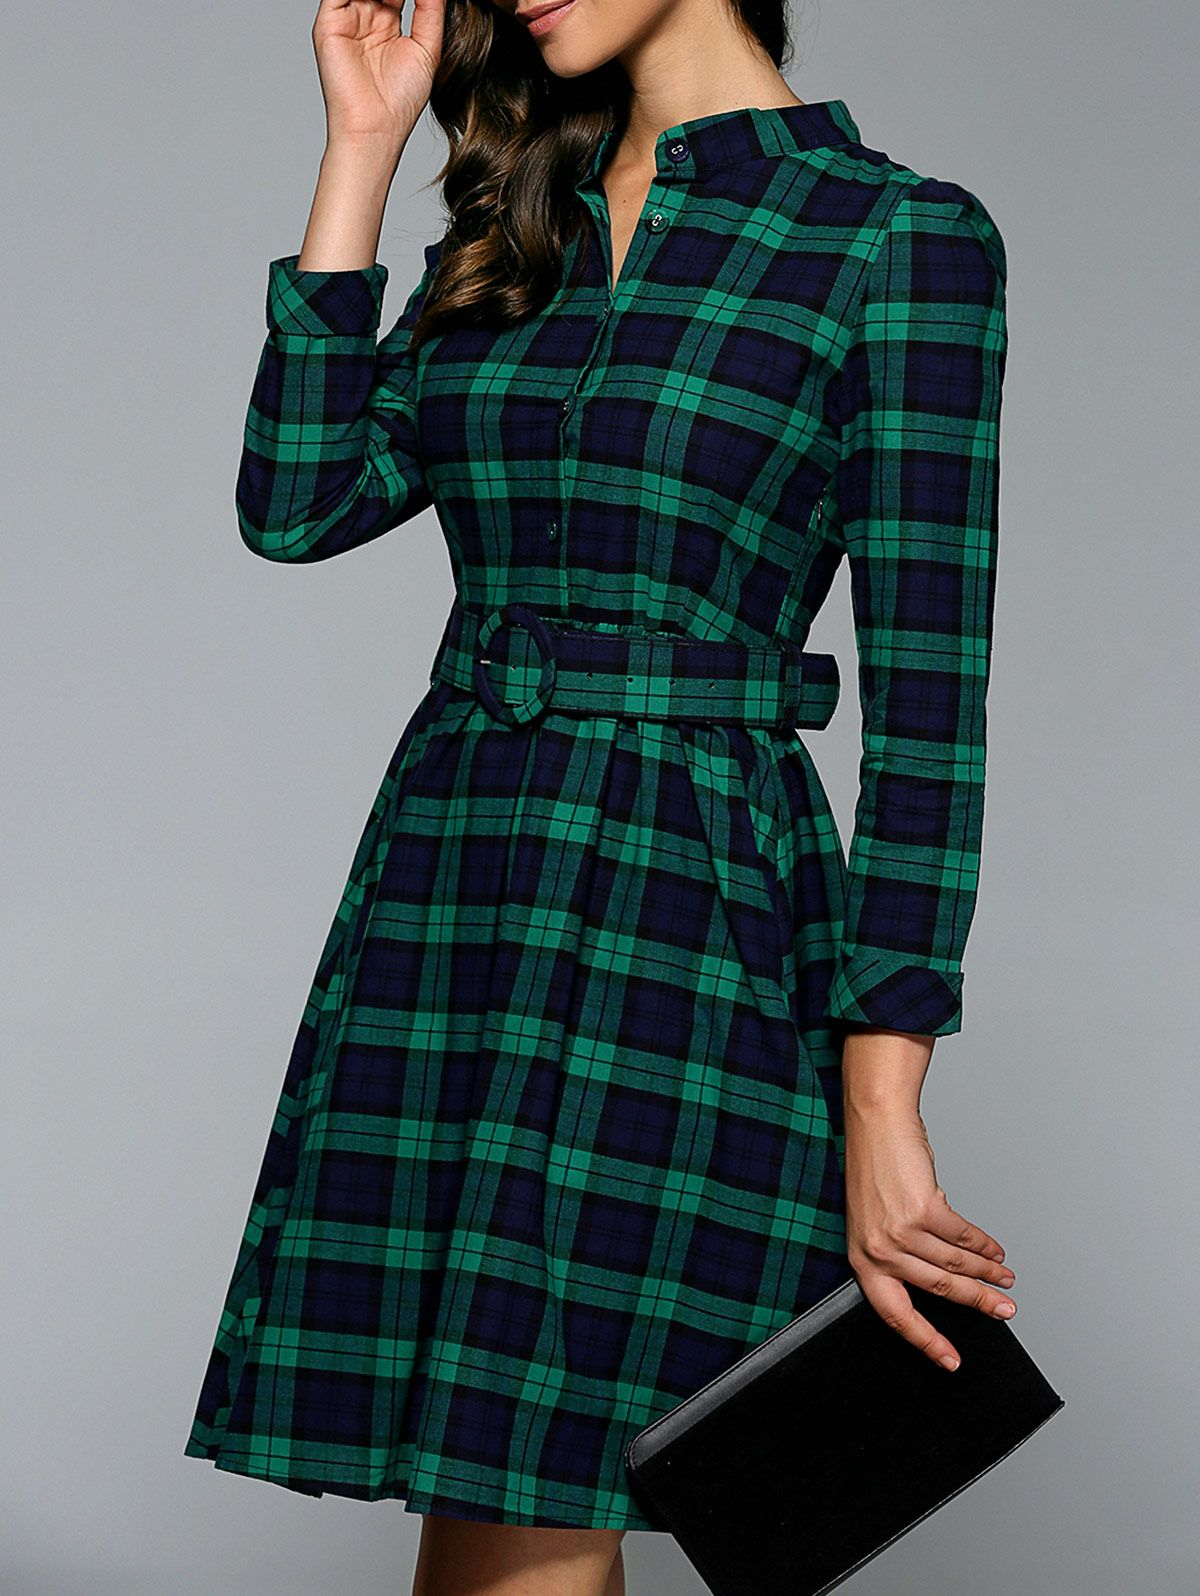 Plaid dress 50+ best outfits - Uncategorized